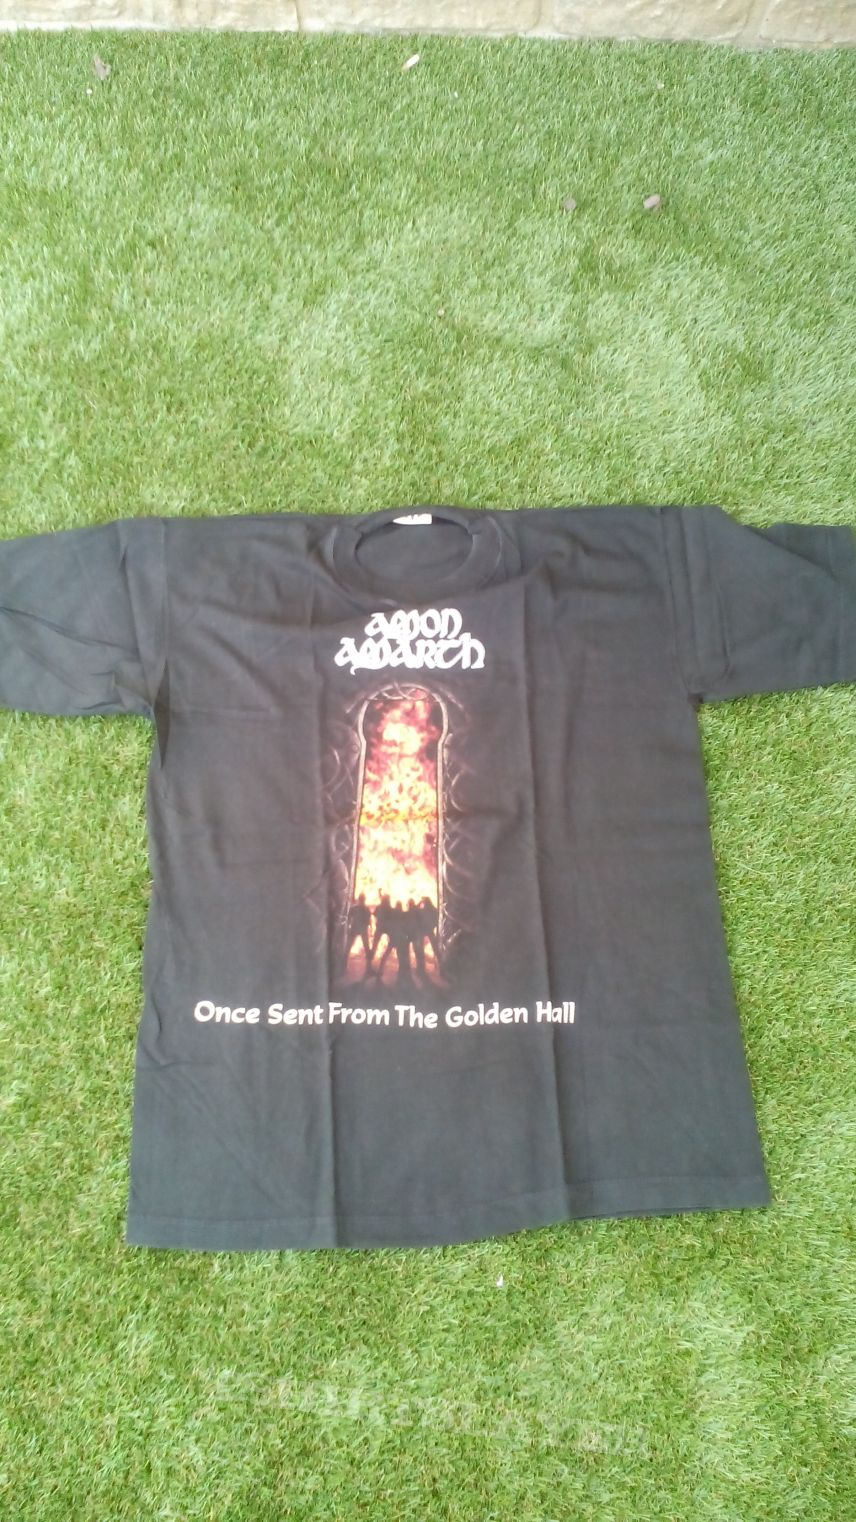 Amon Amarth: (T003) One Sent From The Golden Hall